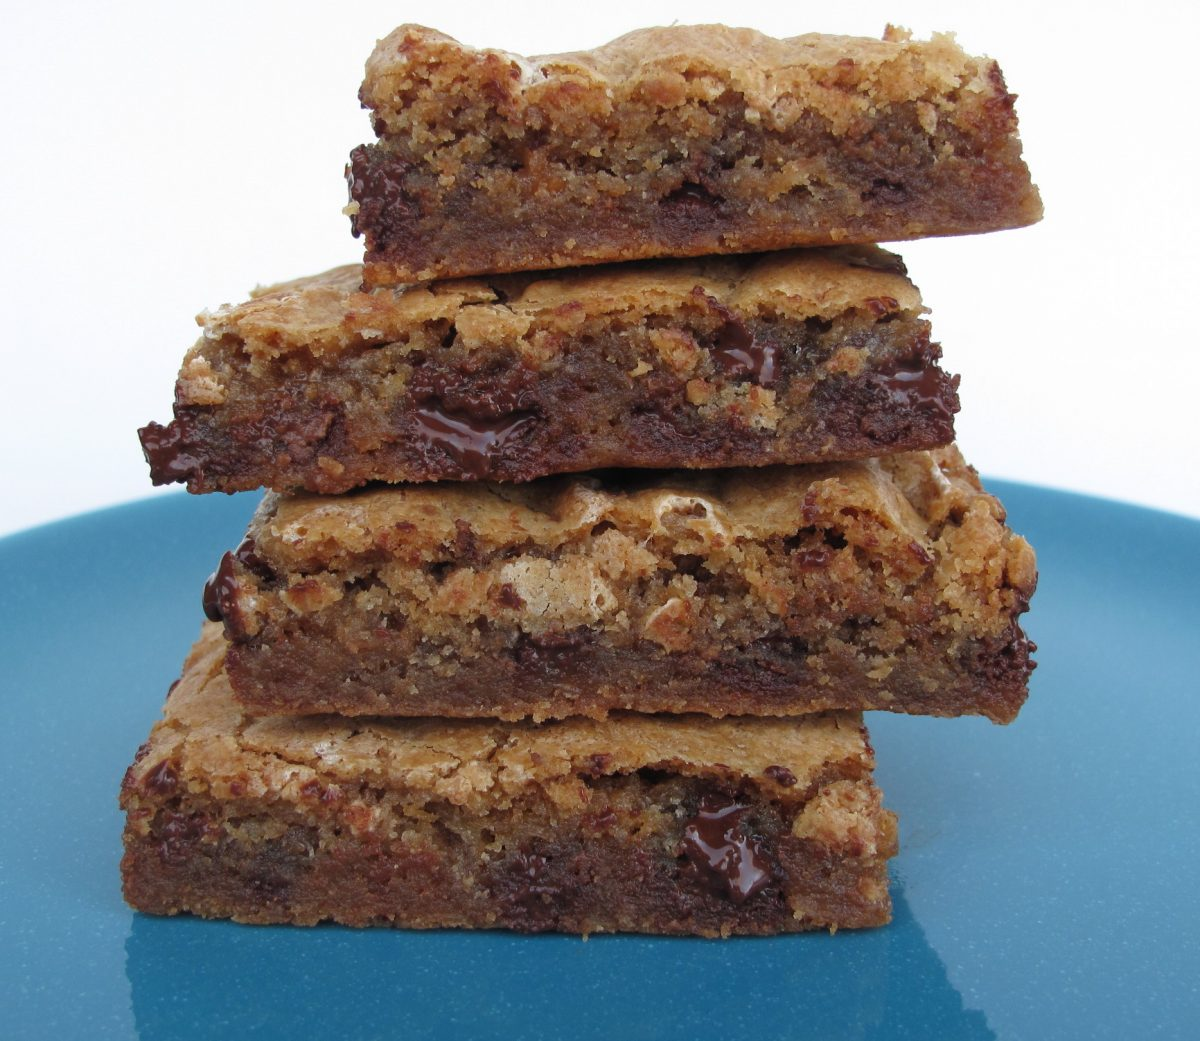 Stack of Chewy Chocolate Toffee Marshmallow Cookie Bars on a blue plate.